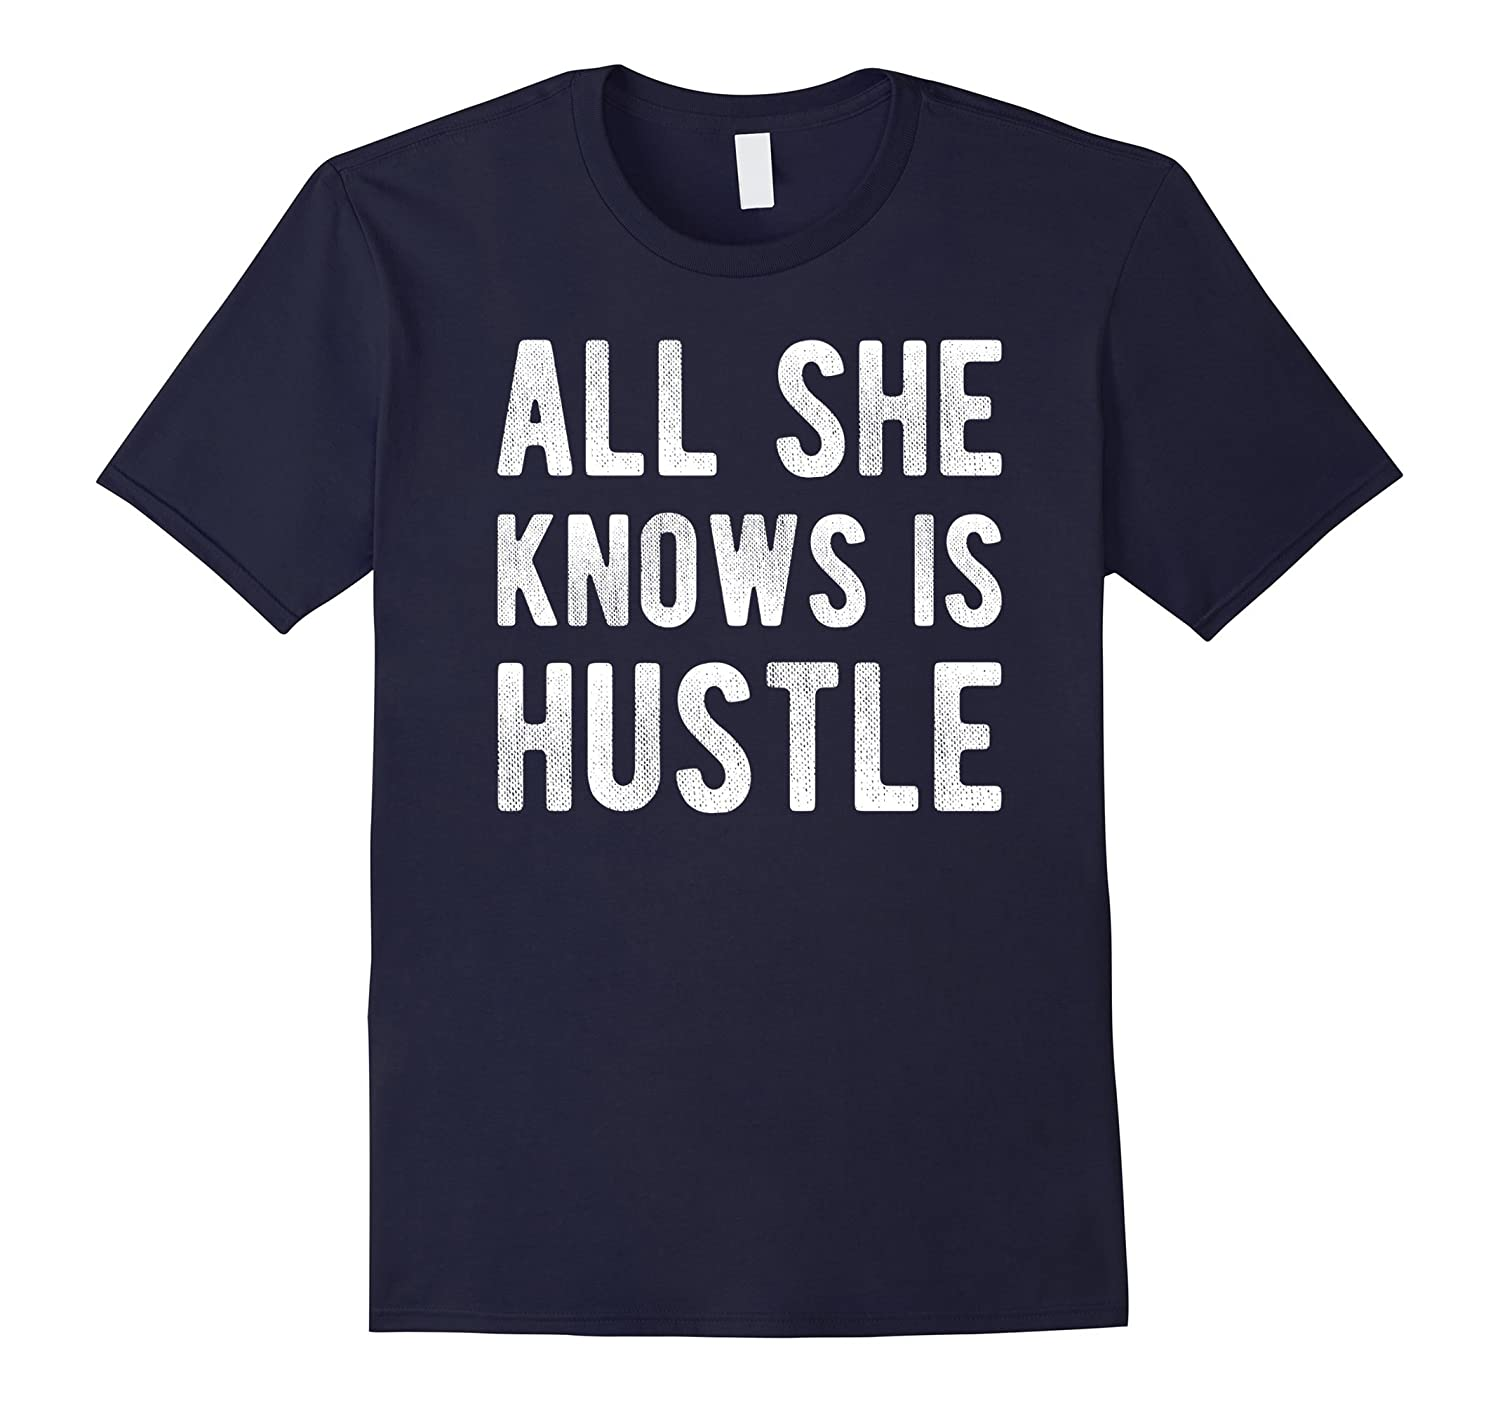 All She Knows Is Hustle - Women's Motivational T-Shirt-FL